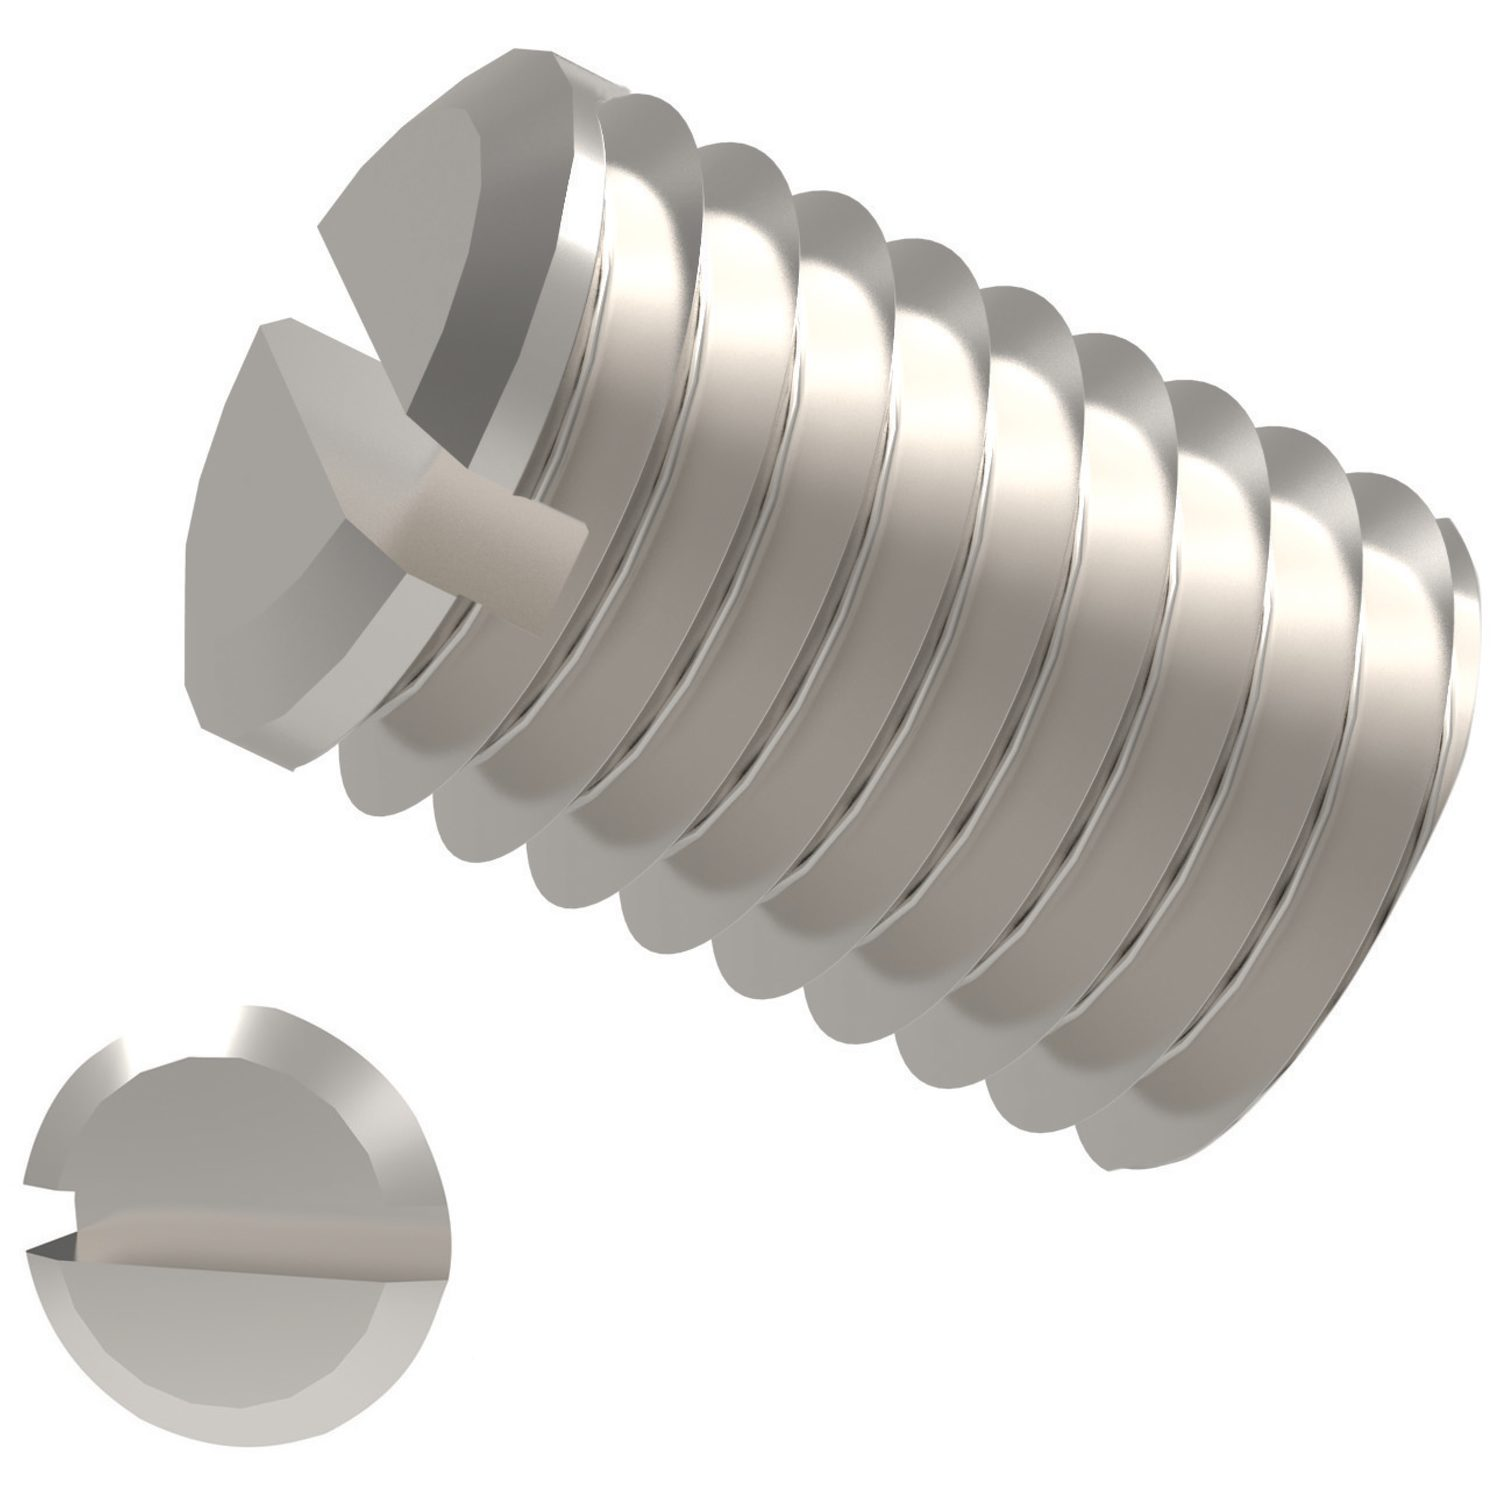 Slotted Set Screws Cup Point A4 Stainless Steel. To DIN 438, cup point.